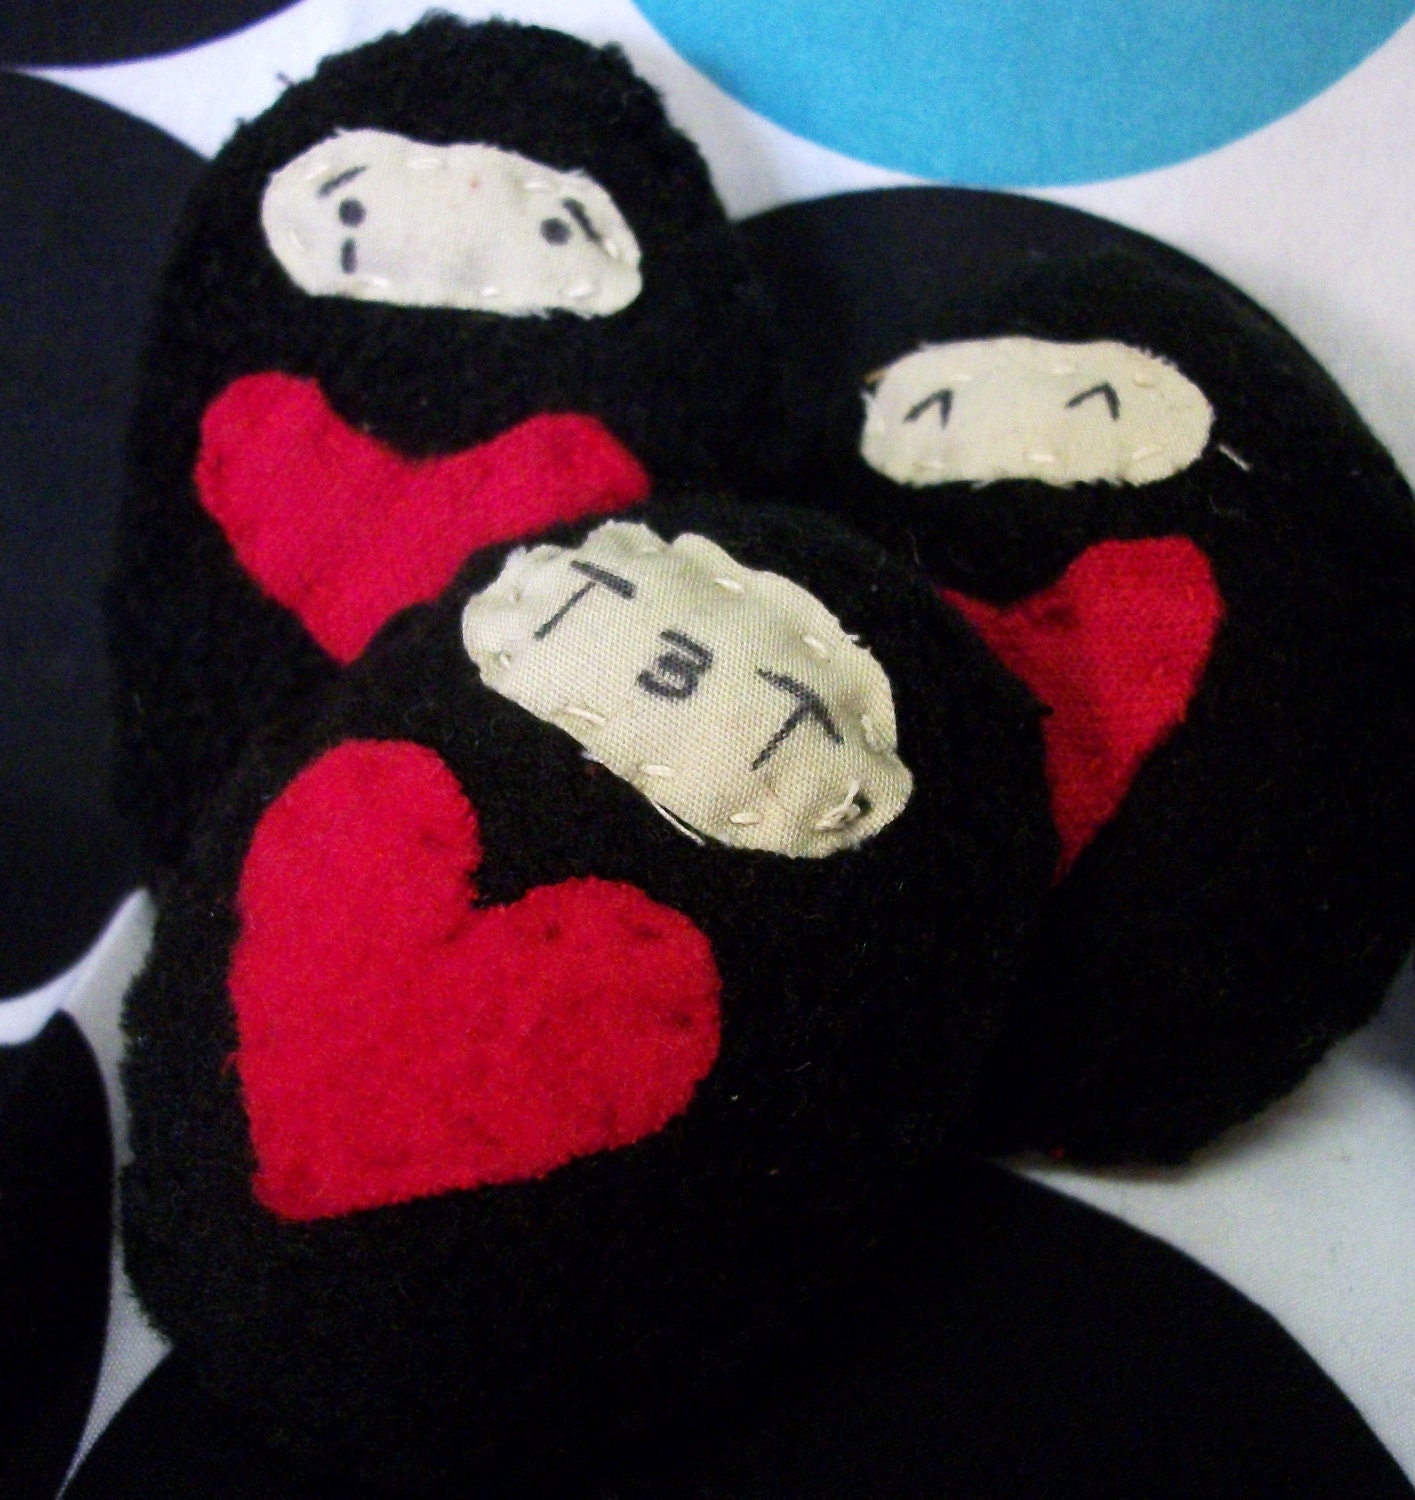 Flip kicking Ninja pocket plush toys